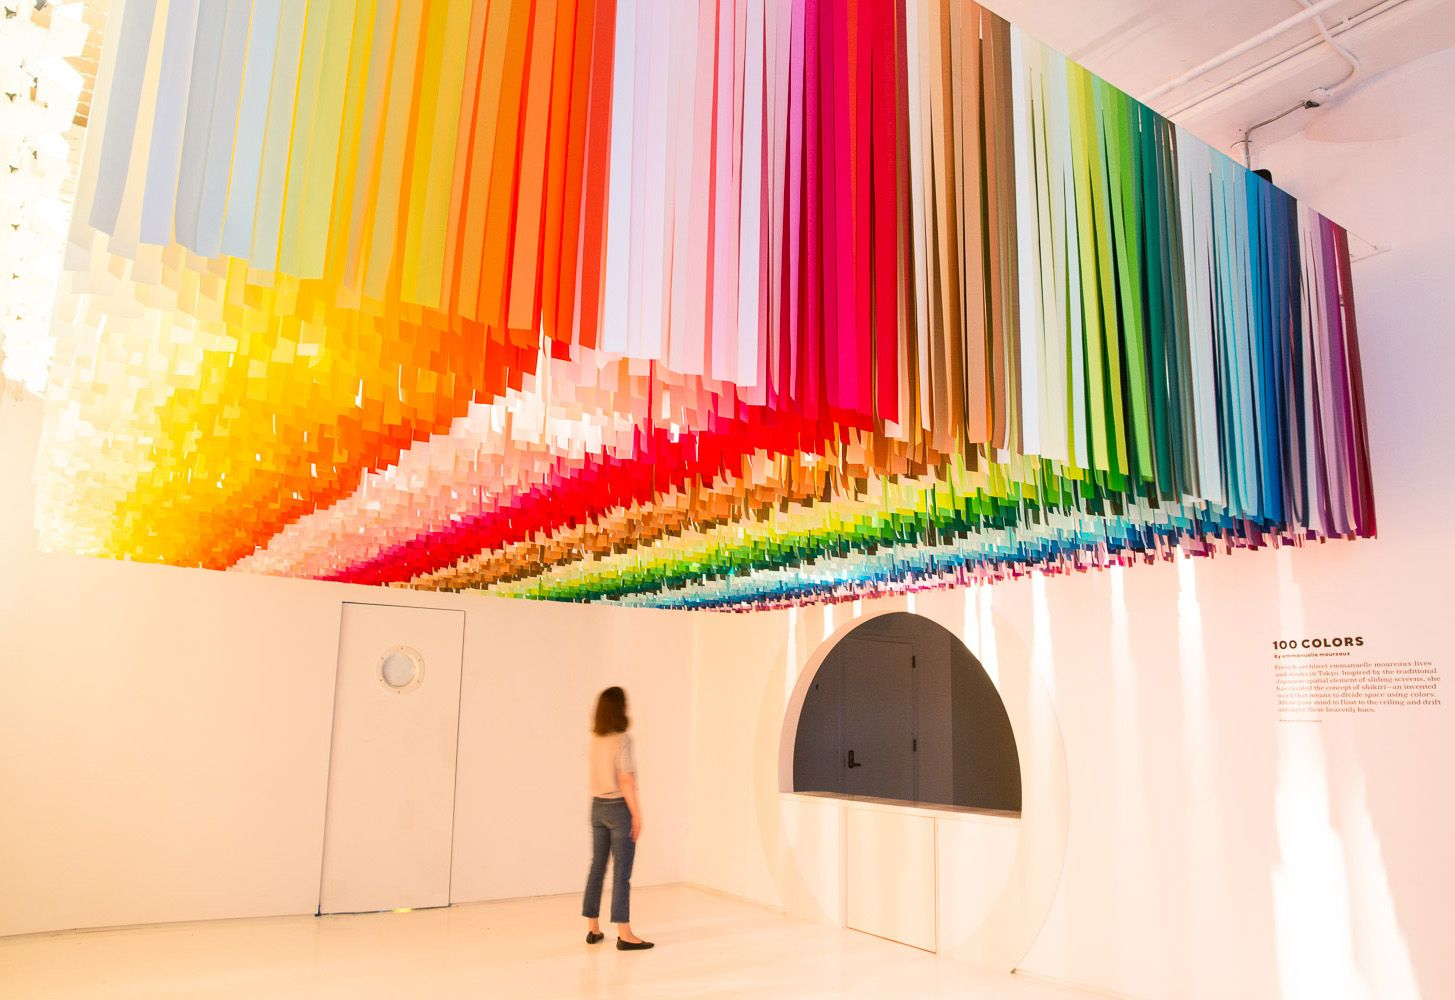 A Look Inside Color Factory S Pop Up Exhibition In Nyc